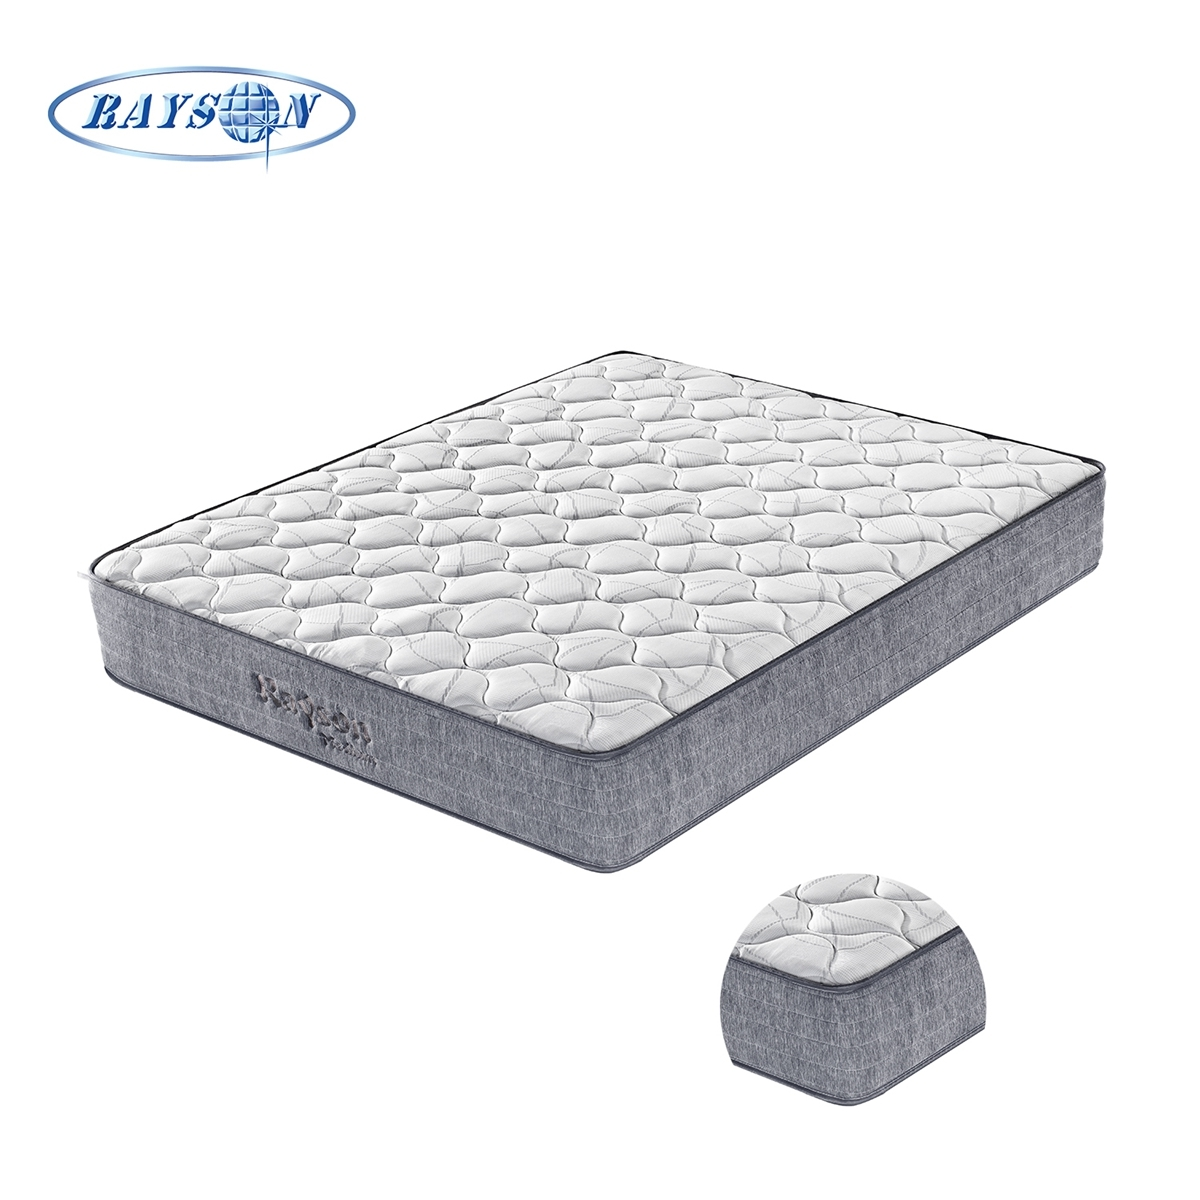 Pocket Spring Sleep Bed Mattresses roll up in a box for bed set